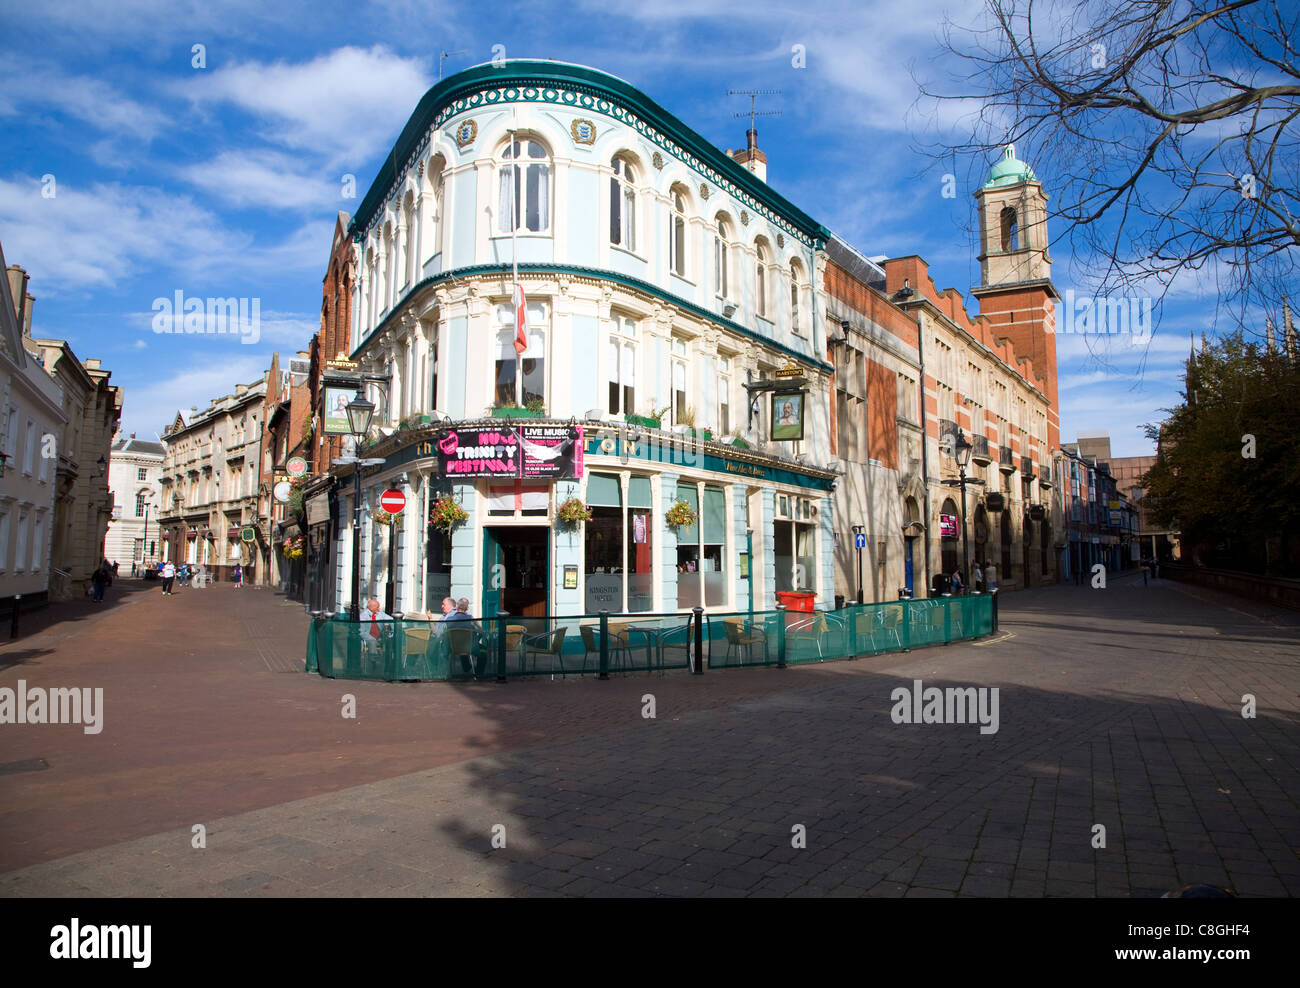 The Kingston pub in the city centre, Hull, Yorkshire, England - Stock Image